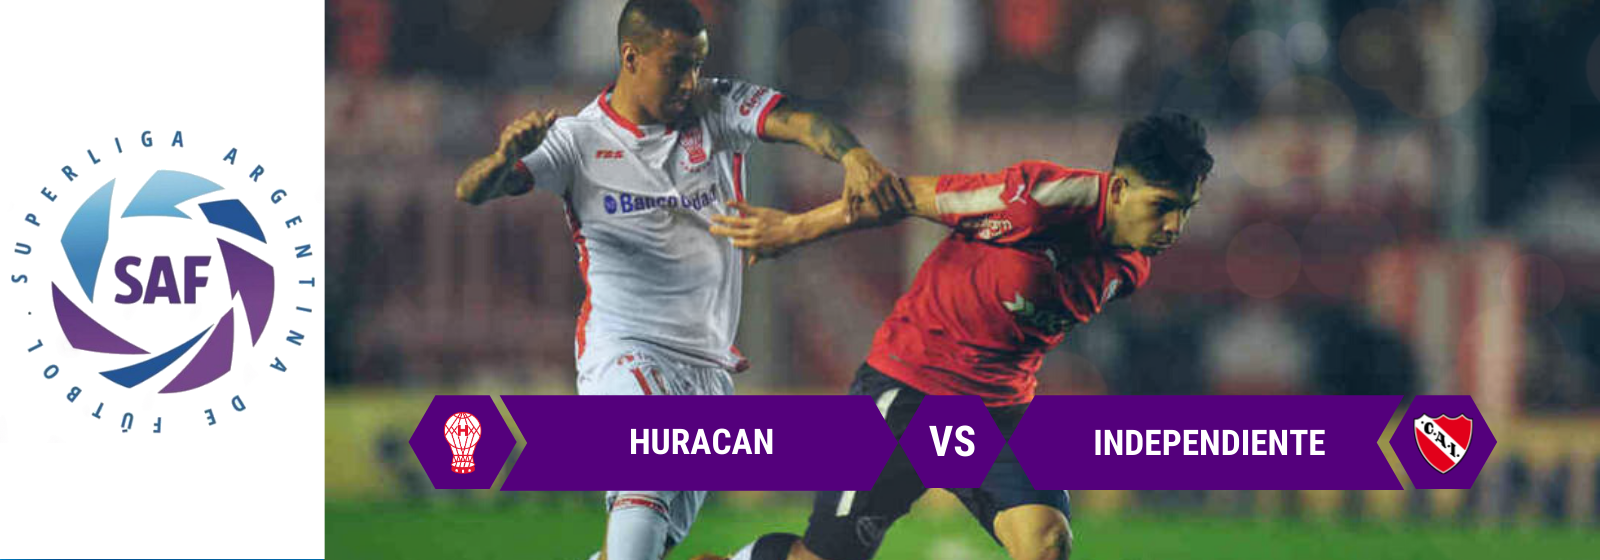 Asianconnect: Huracan vs Independiente Odds for March 2, 2020